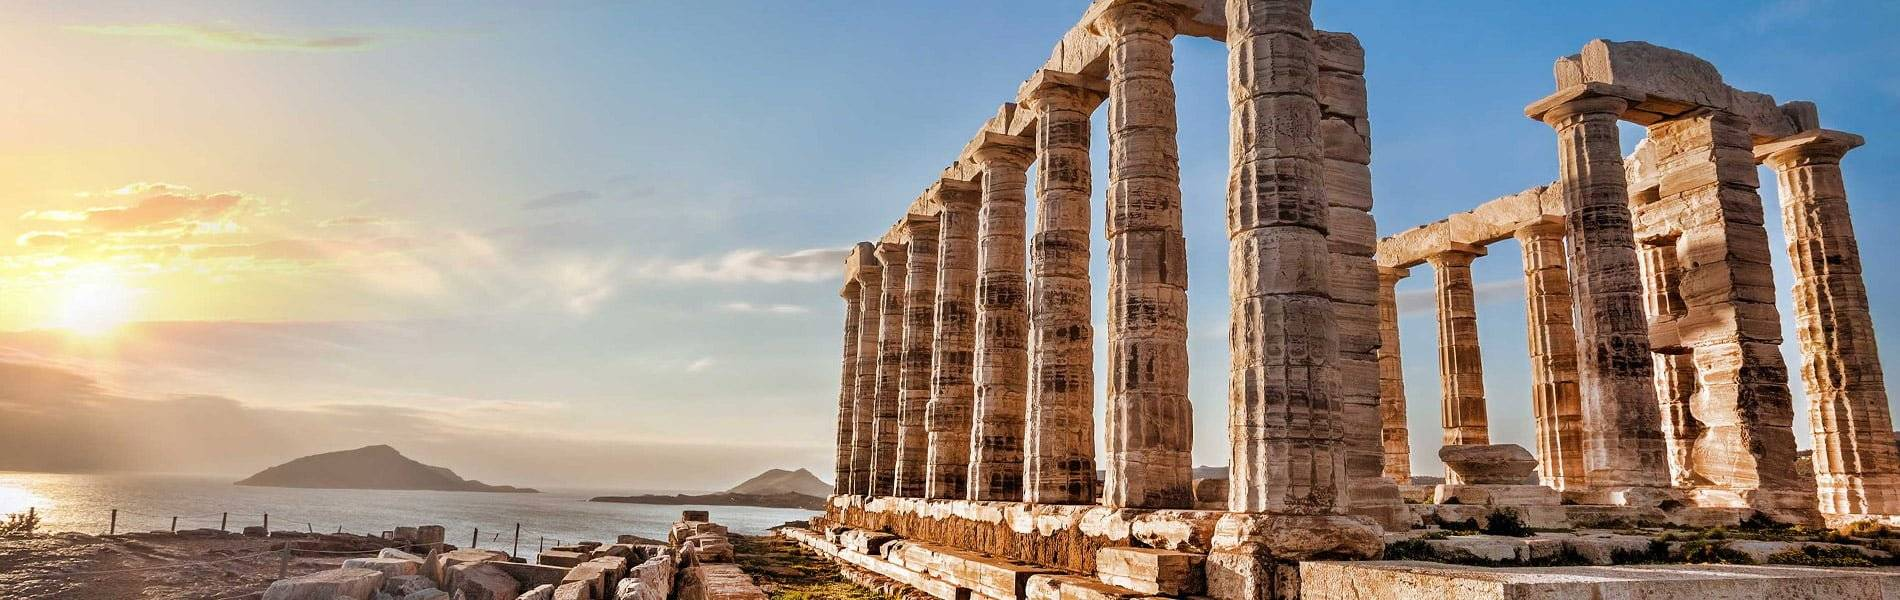 poseidon temple at sounion